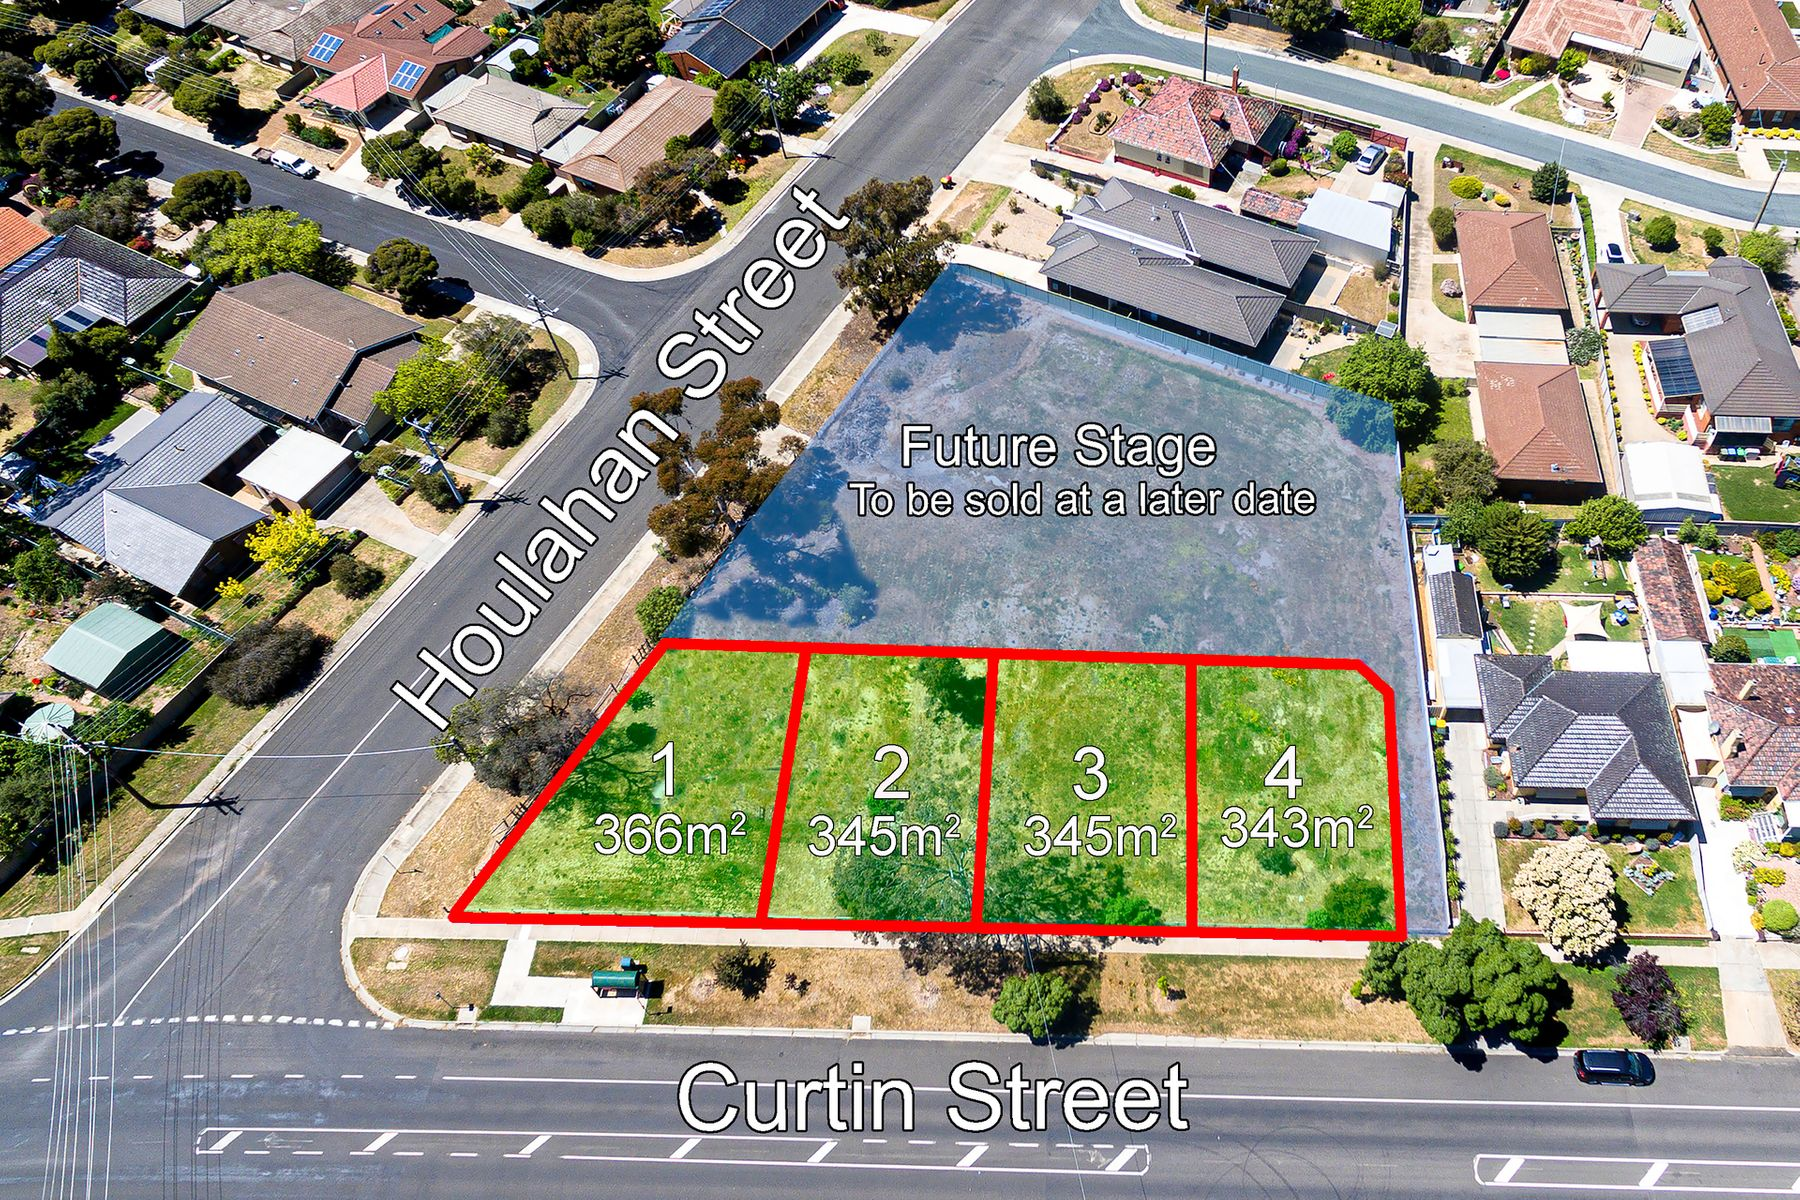 Lot 2 /21 Curtin Street, Flora Hill, VIC 3550